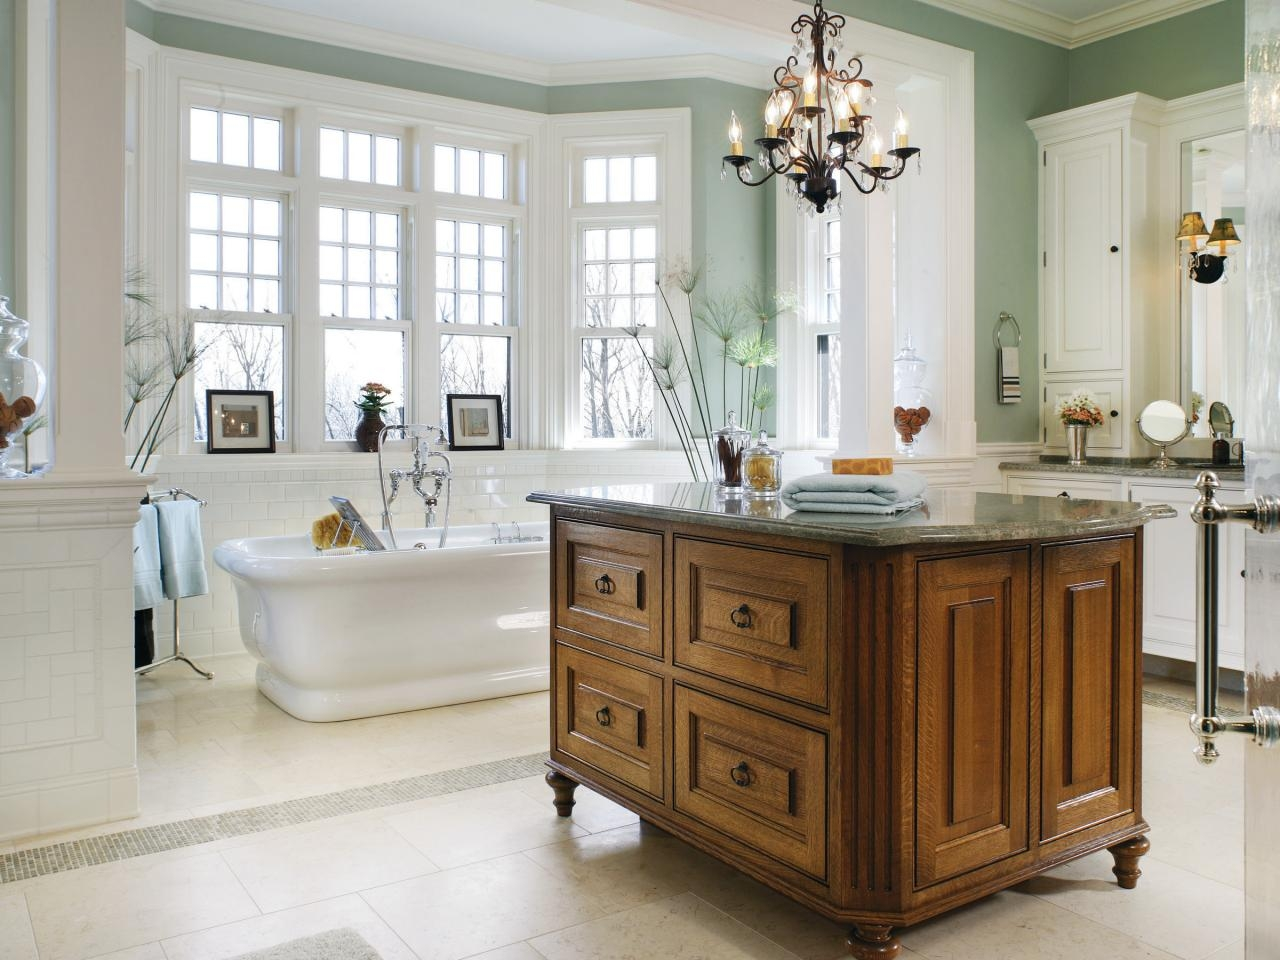 Chandelier Bathroom Lighting Ideas For Home Decoration Inside Bathroom Lighting Chandeliers (Image 13 of 25)